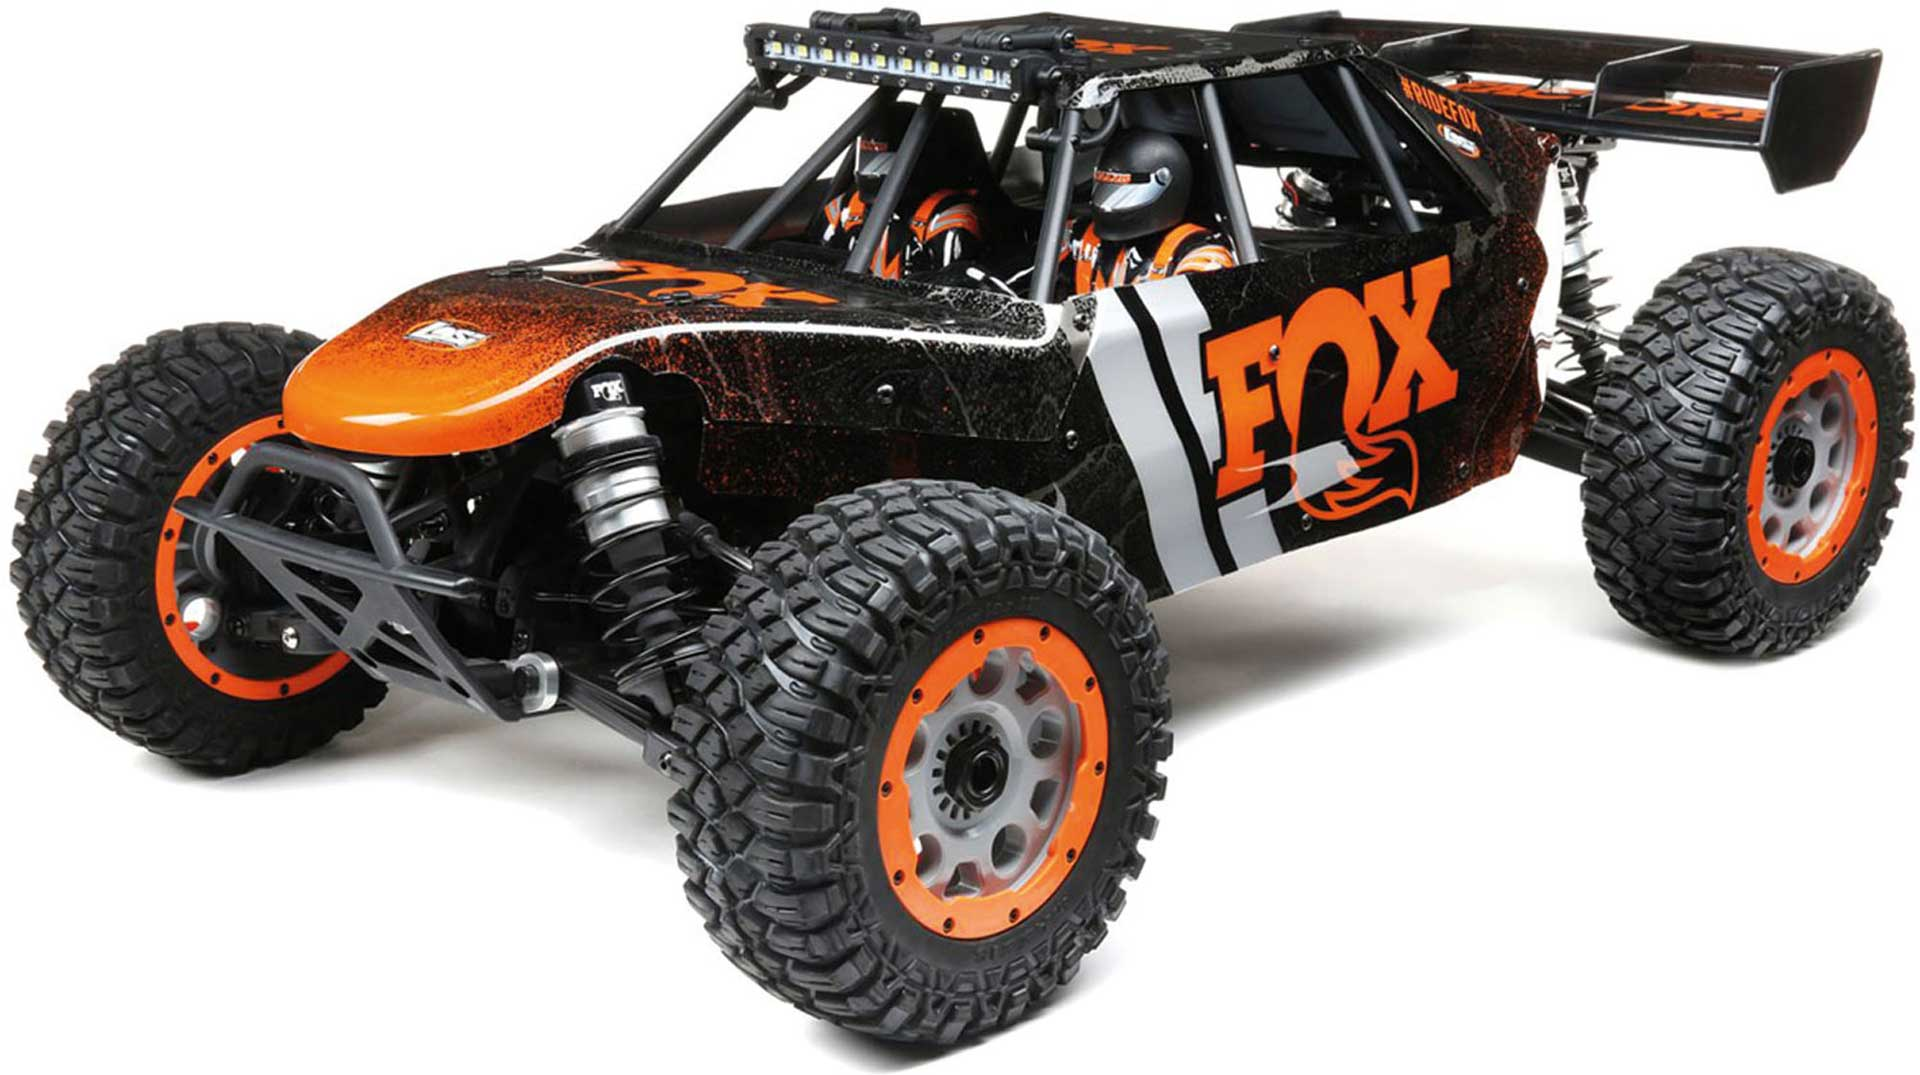 LOSI DBXL-E 2.0 FOX DESERT BUGGY 4WD 1/5 WITH SMART TECHNOLOGY